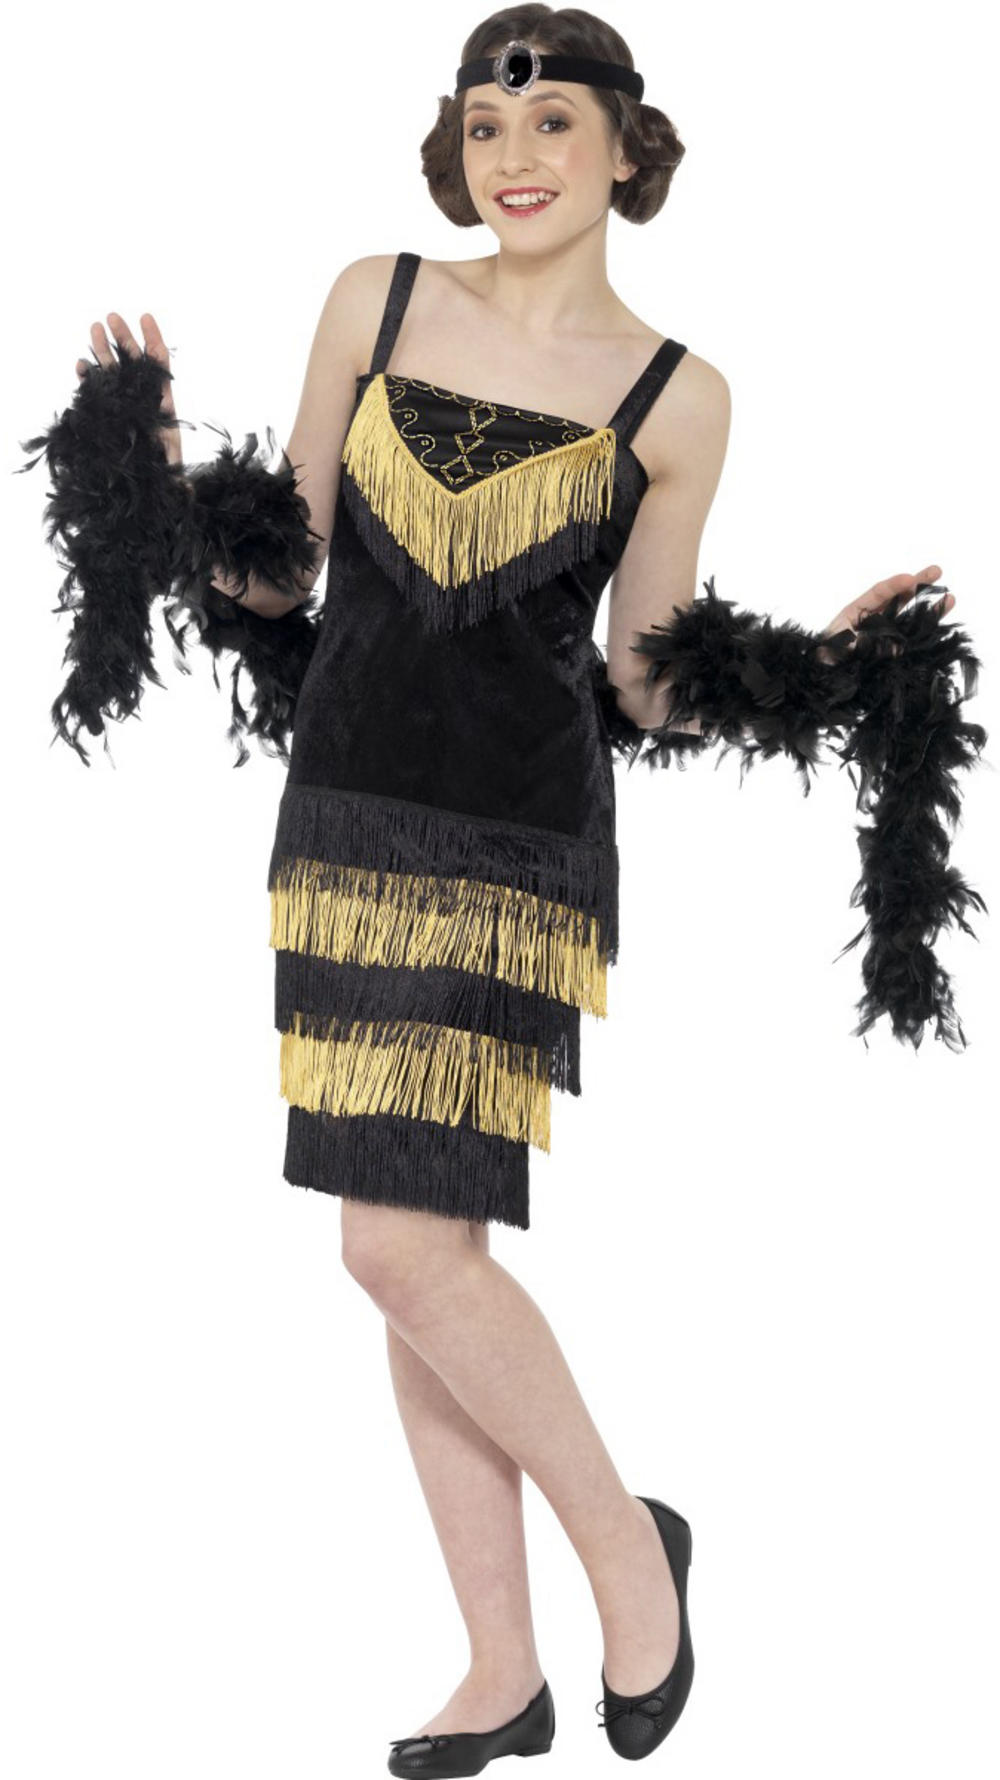 Black and Gold Flapper Girl Teens Costume